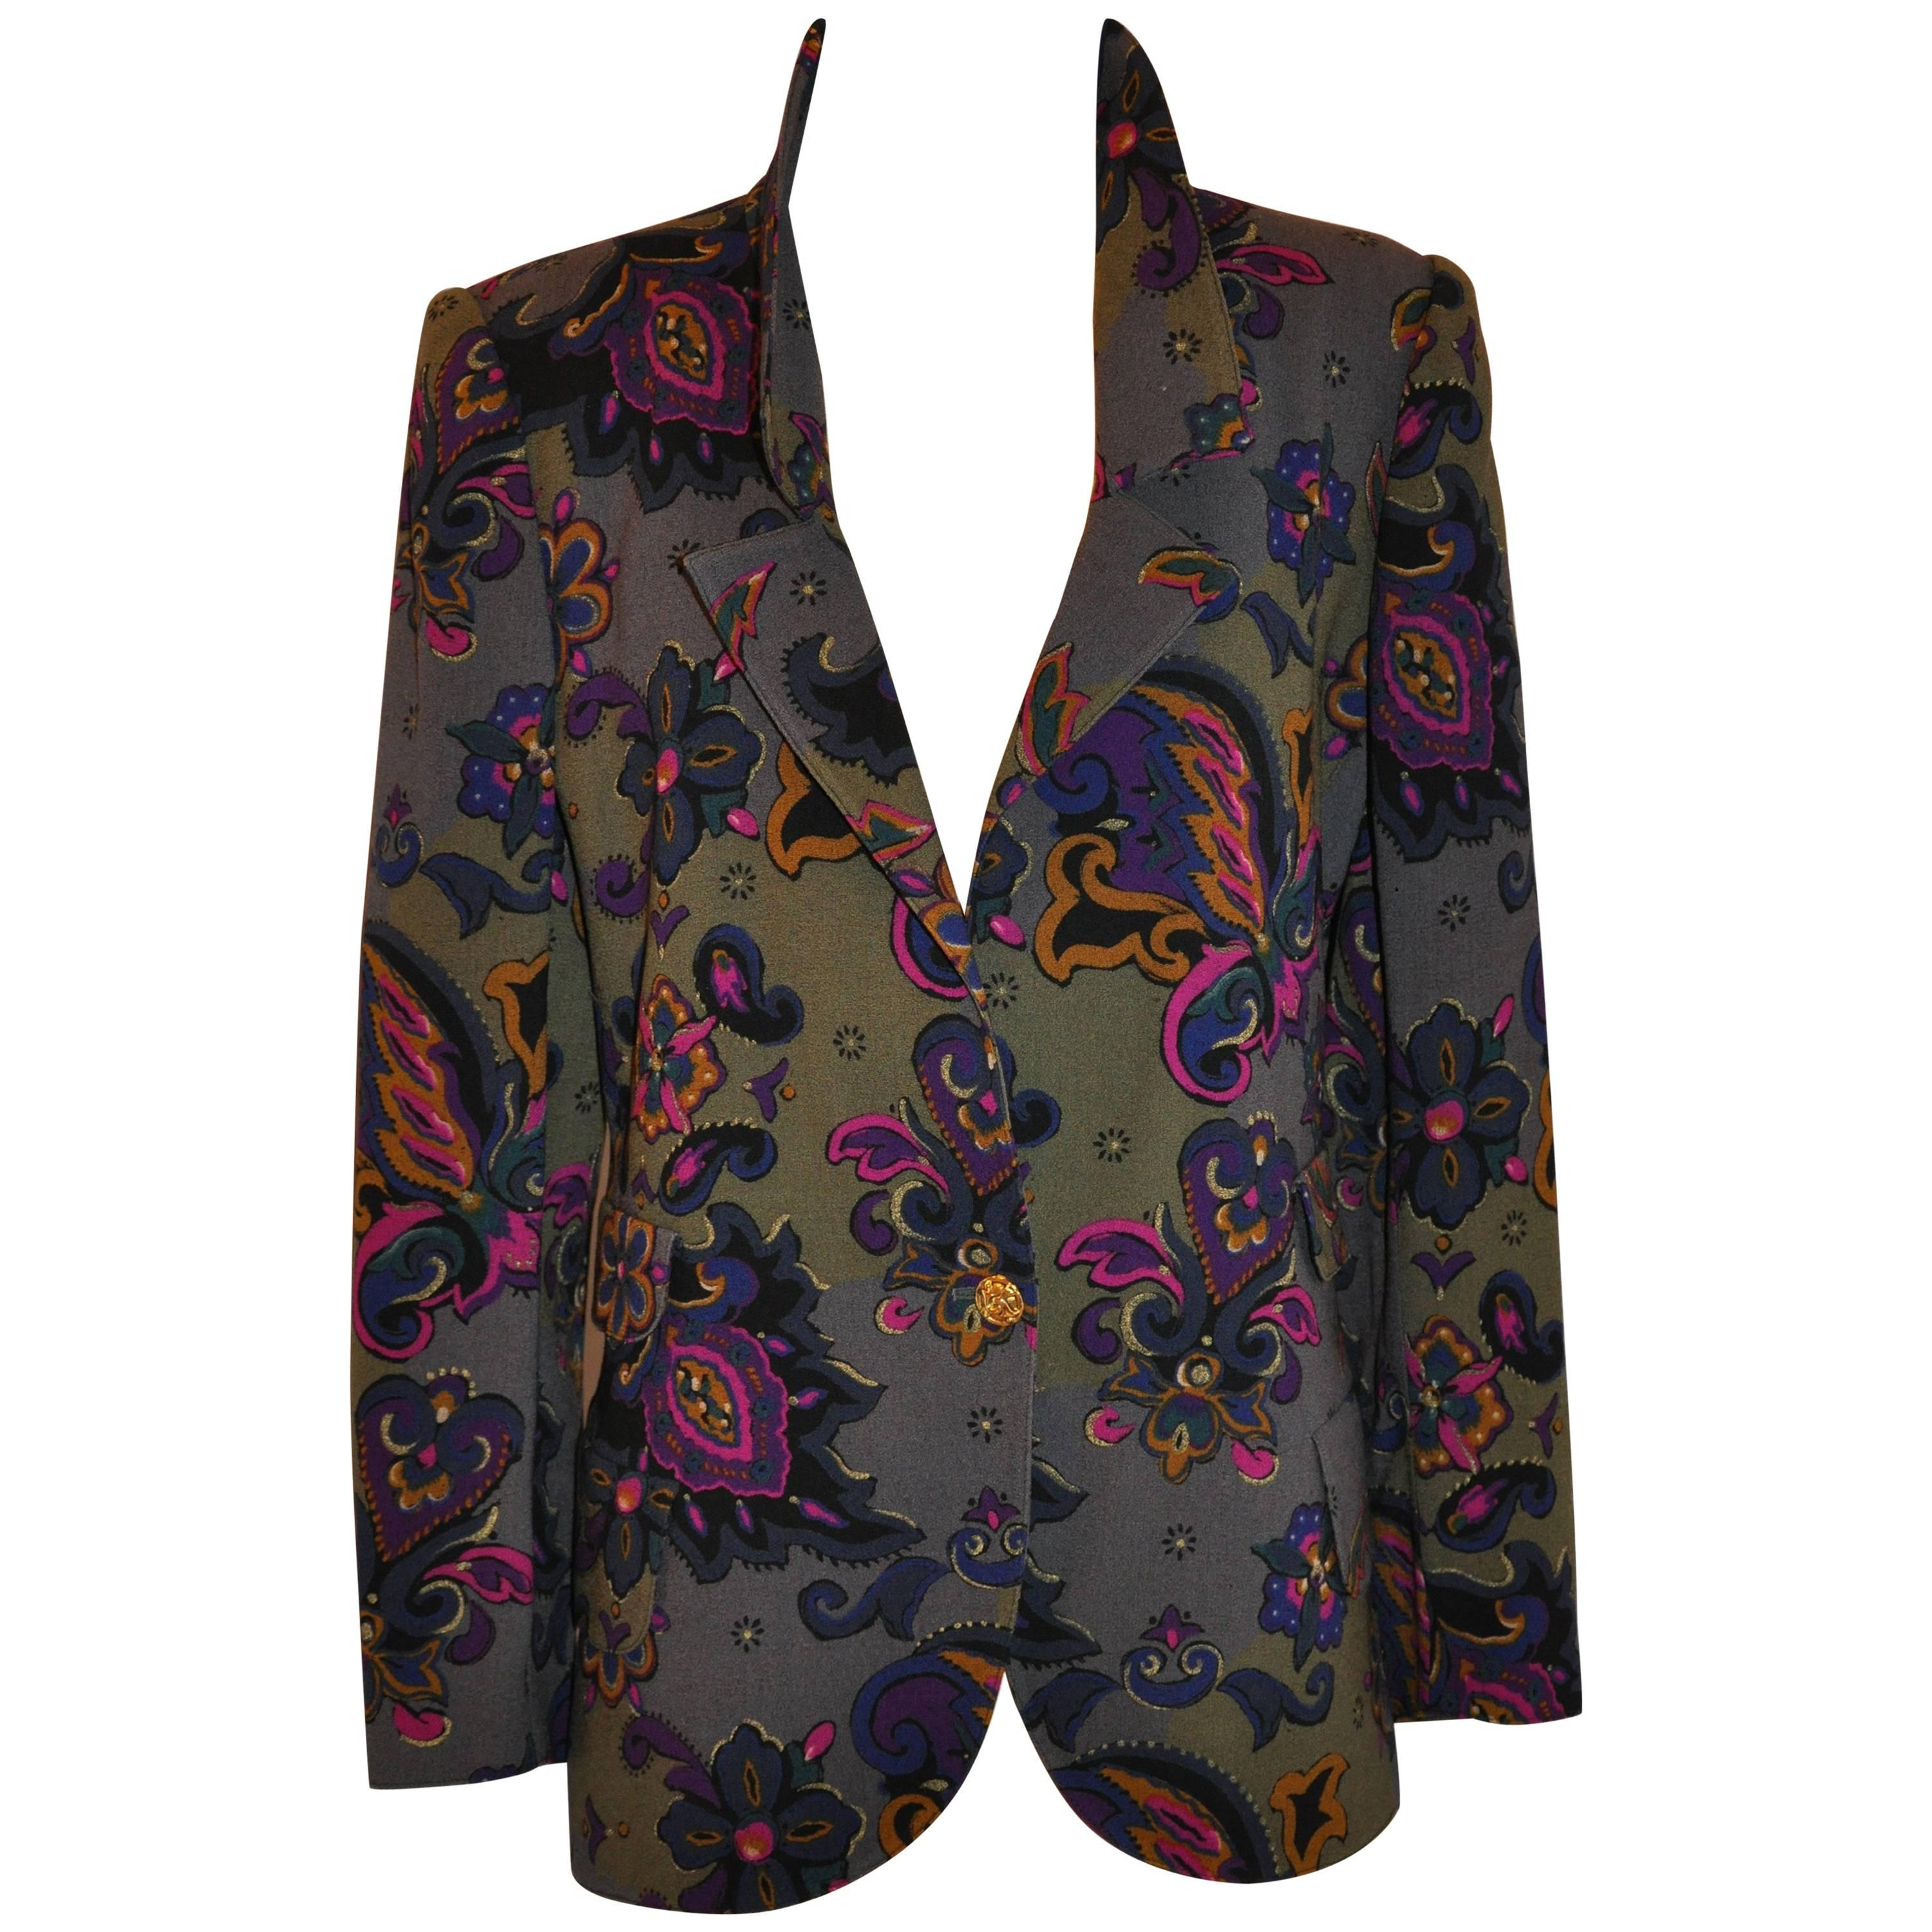 Emmanuel Ungaro Whimsical Multi-Color Palsey & Floral Wool Challis Jacket